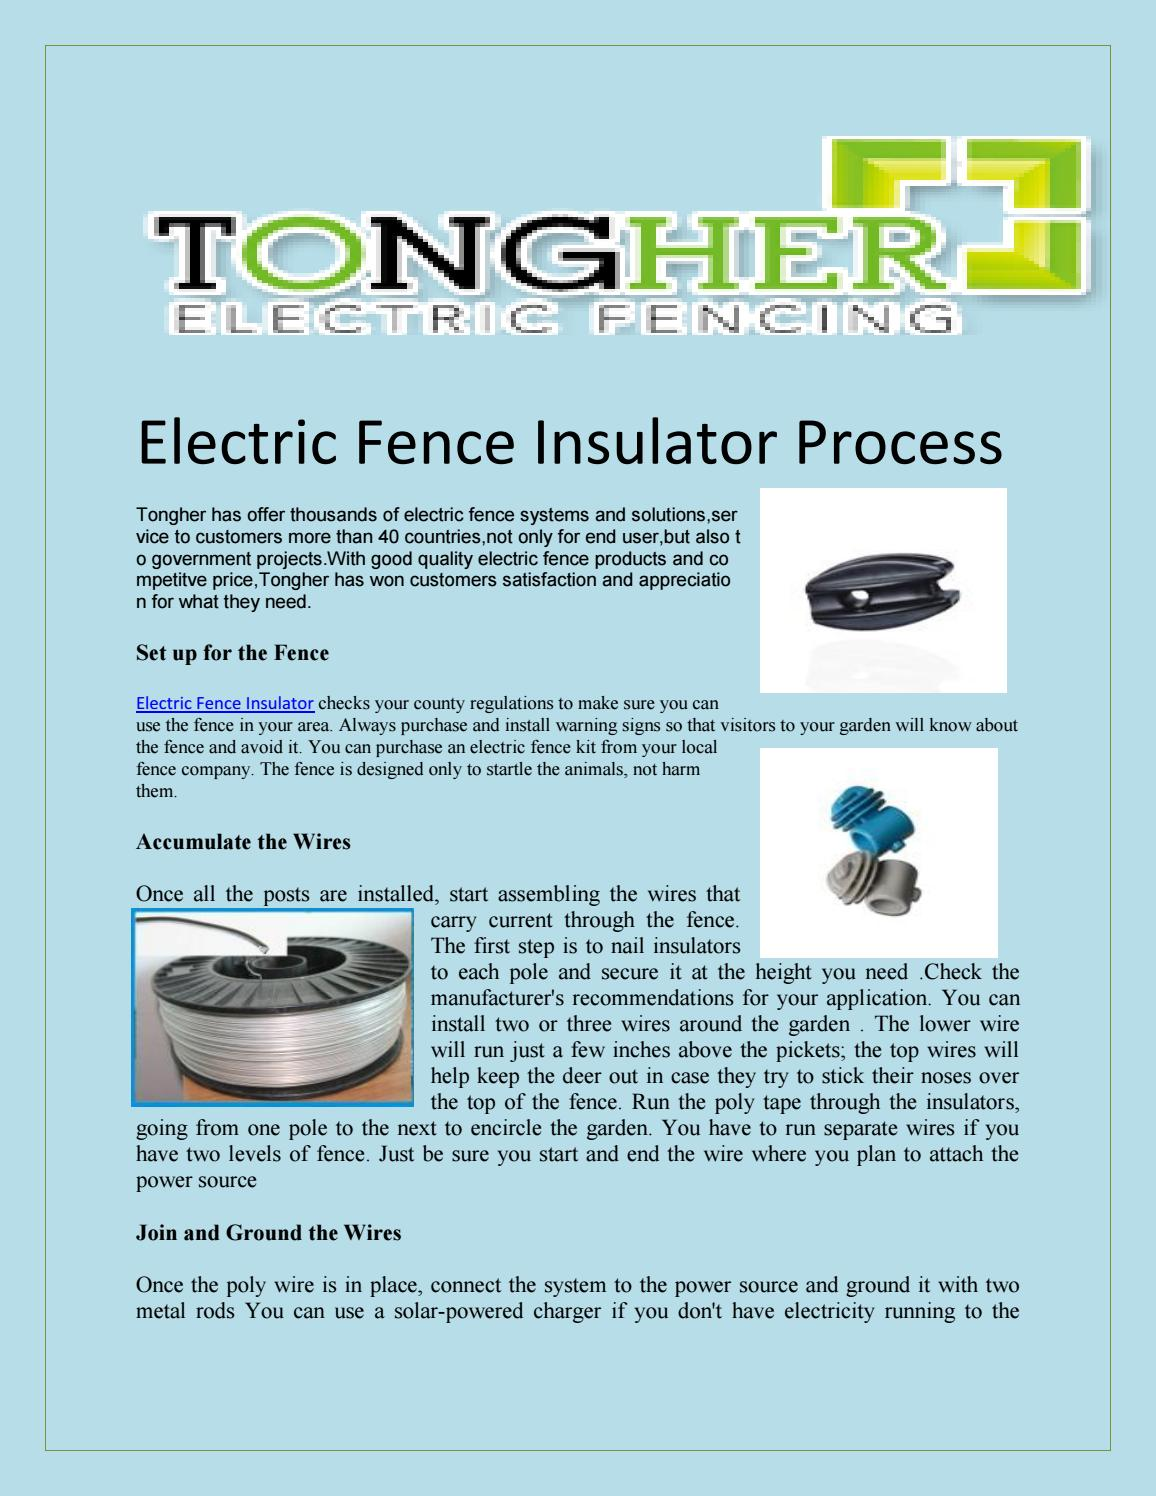 Electric Fence Insulator By Tonghertech Issuu How To Install